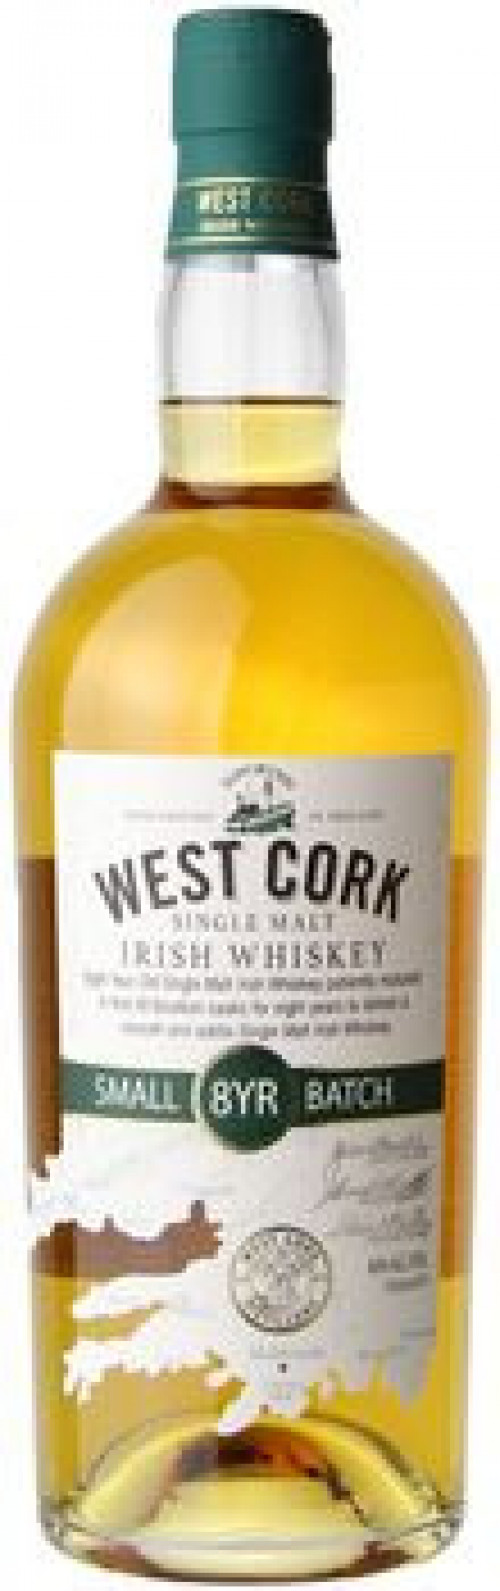 West Cork 8yr Irish Whiskey 750ml